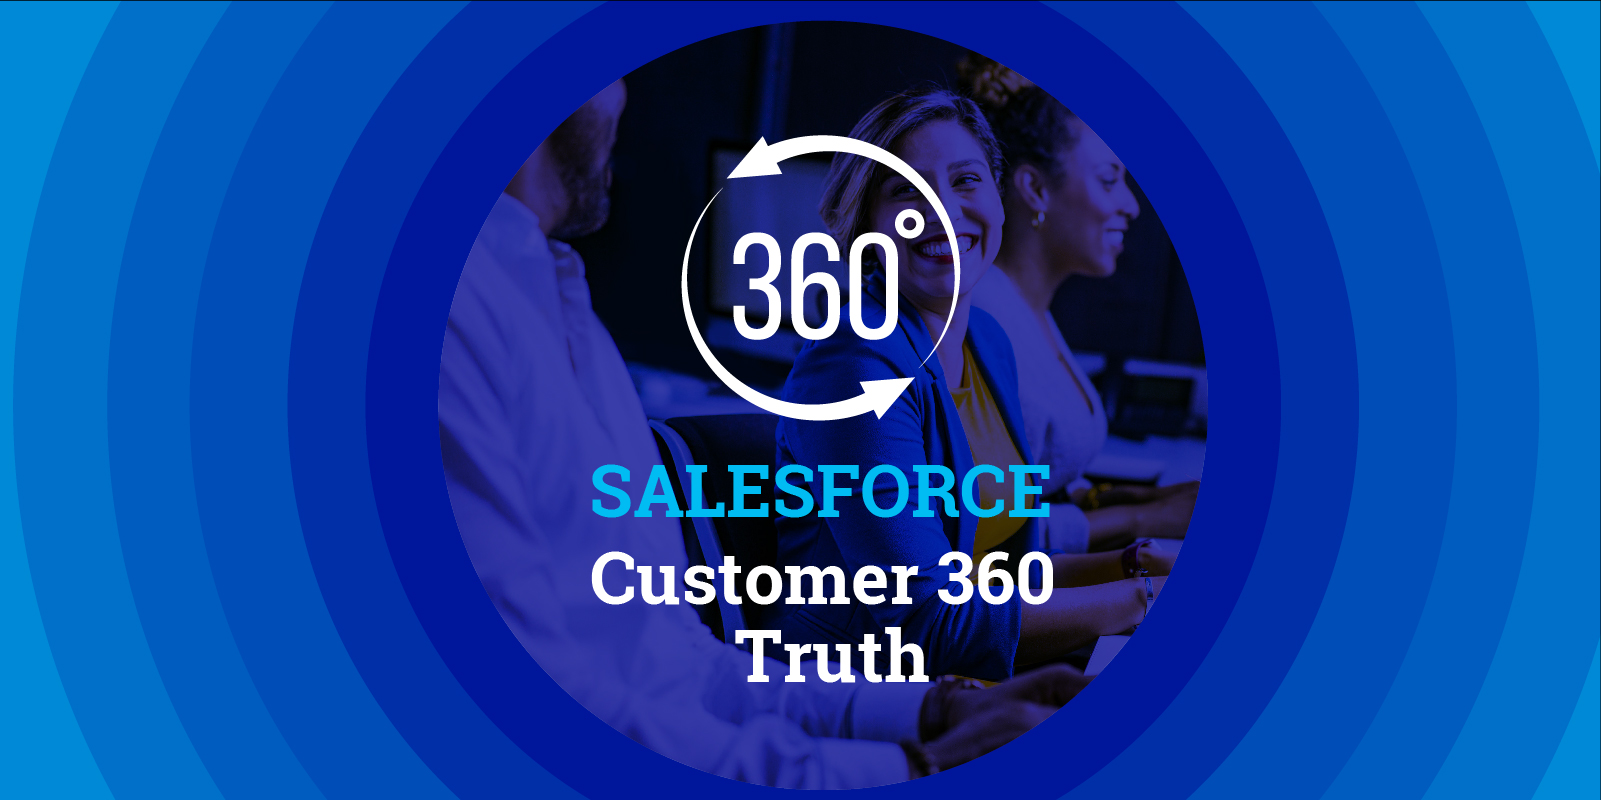 Keep your employees close and customers closer with Salesforce Customer 360 Truth